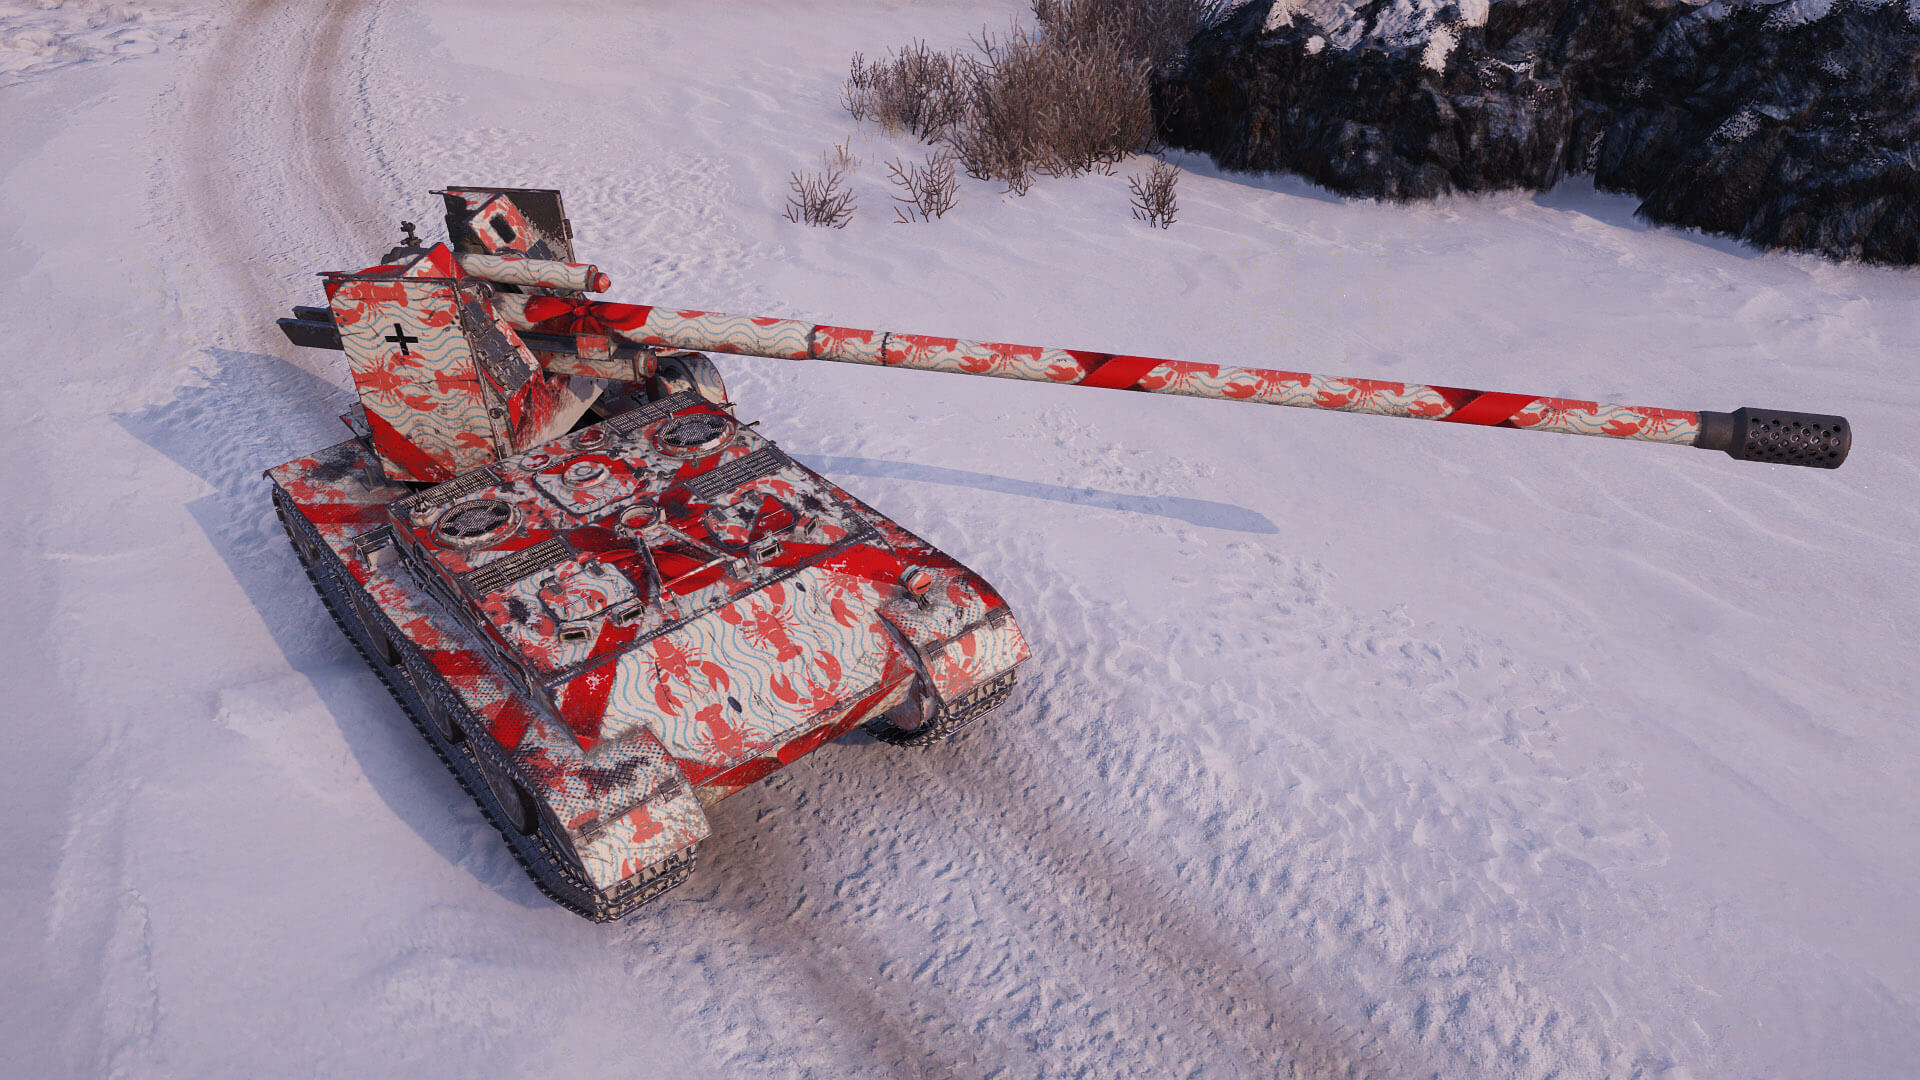 Untitled-1 0021 Worldoftanks H 2018-12-04 13-14-04-39